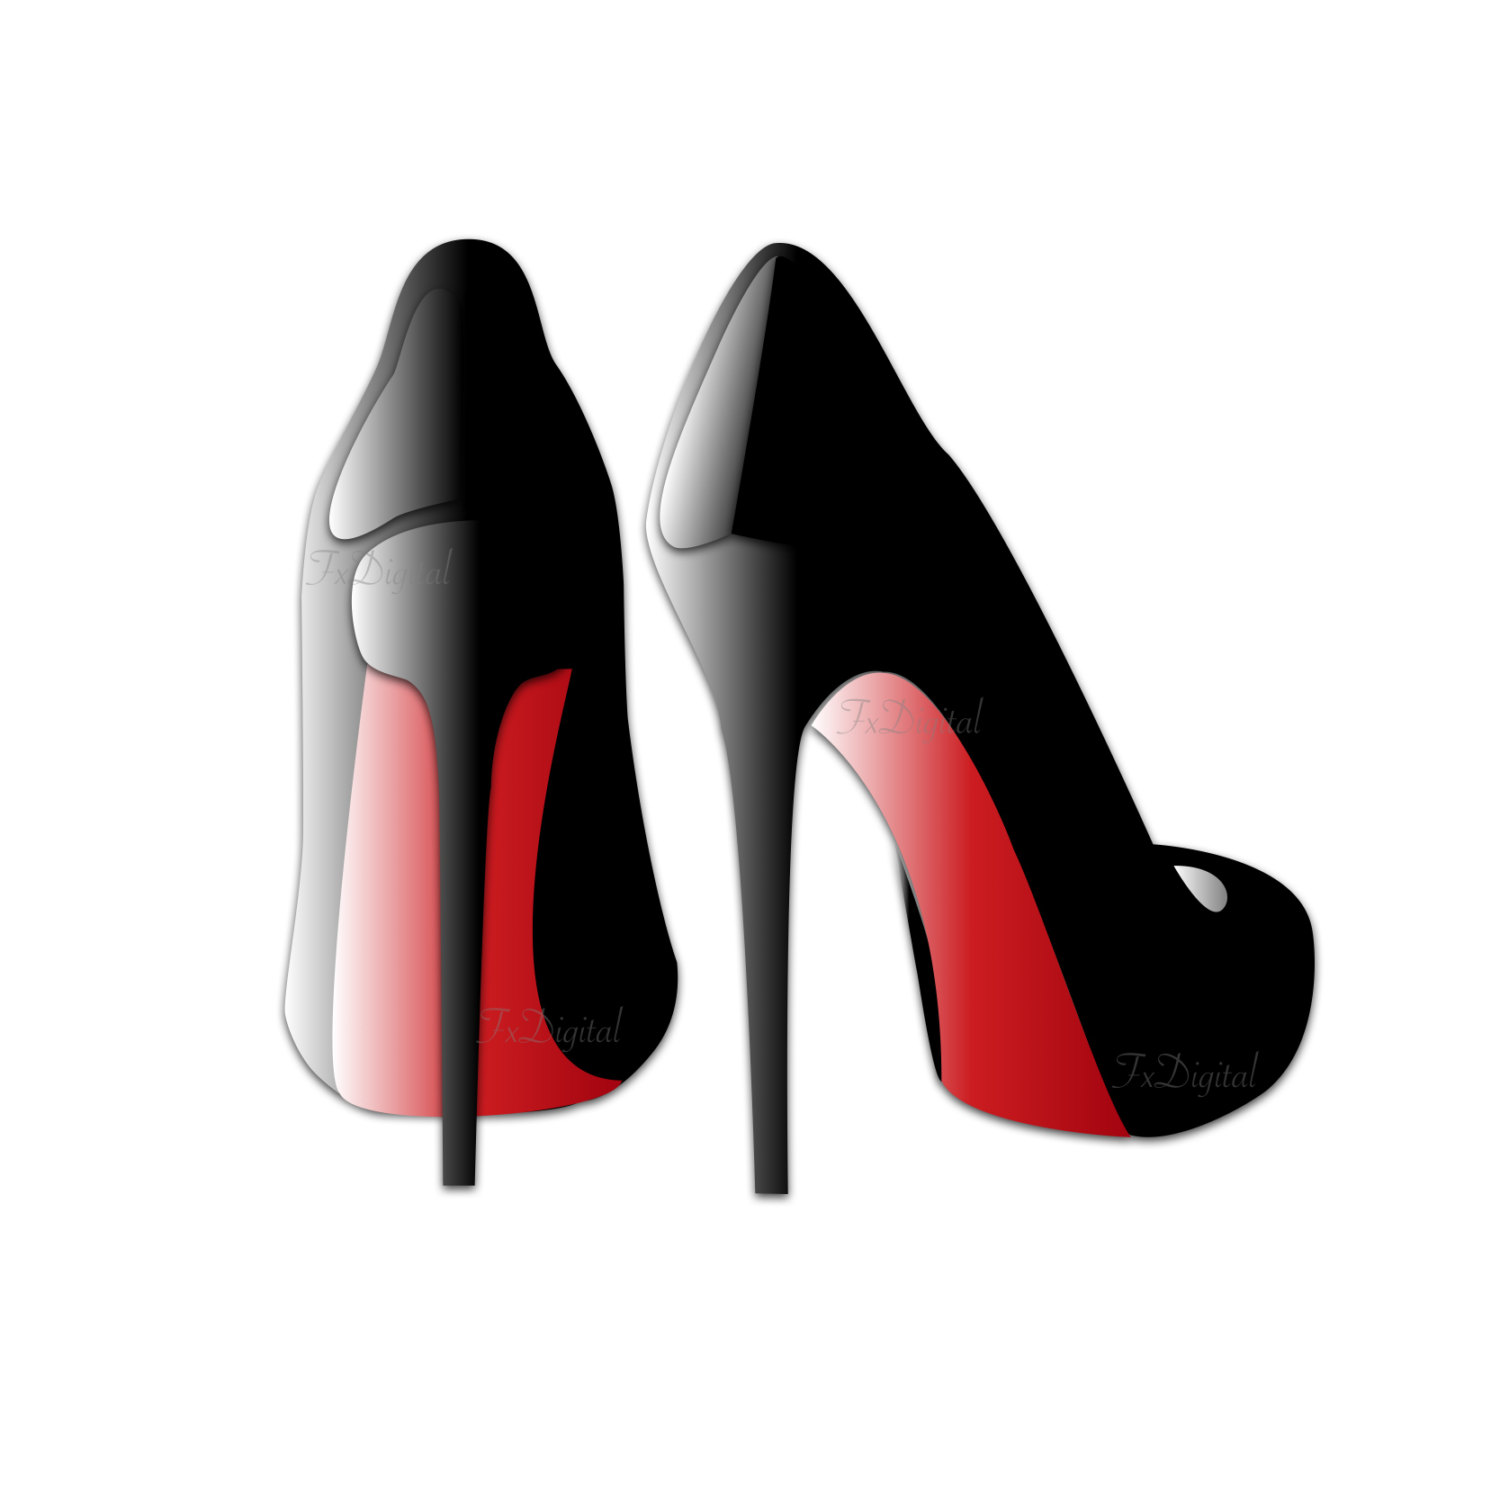 1500x1500 Red High Heels Clip Art Sexy High Heels Graphic Shoe Clip